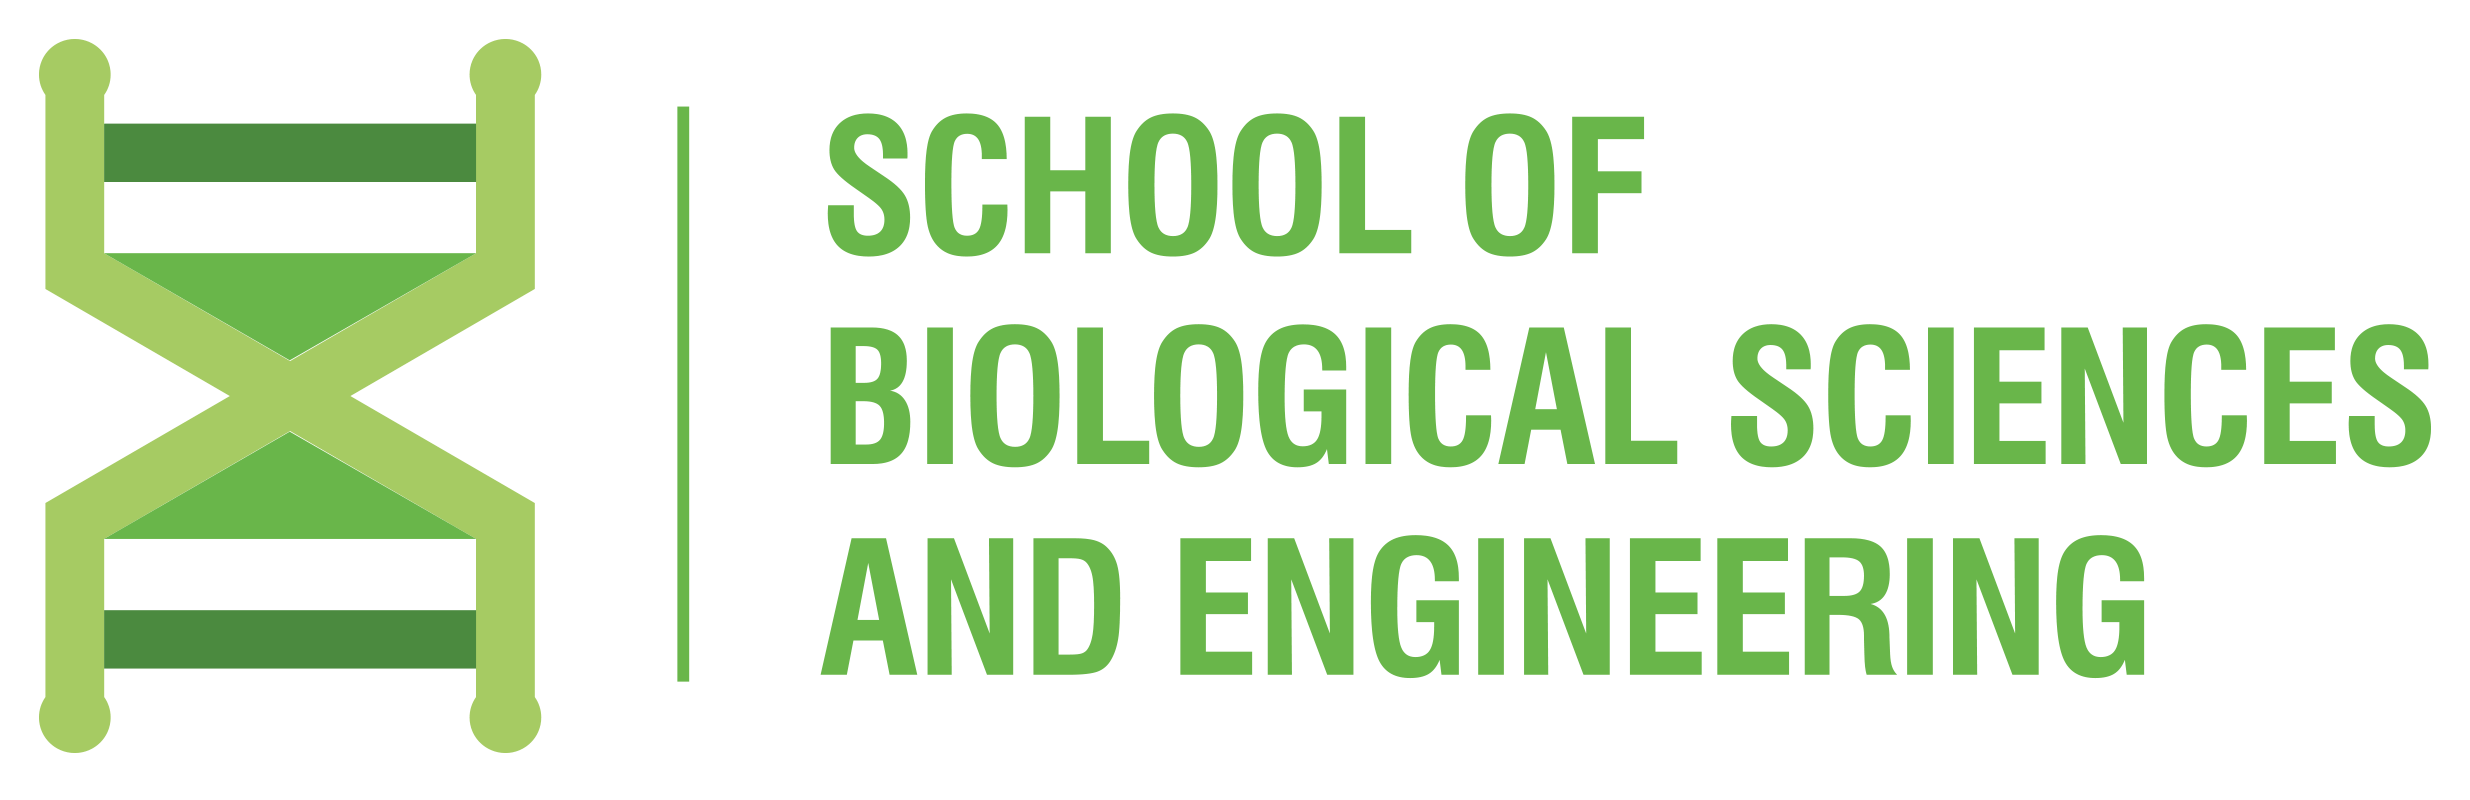 Biological Sciences and Engineering